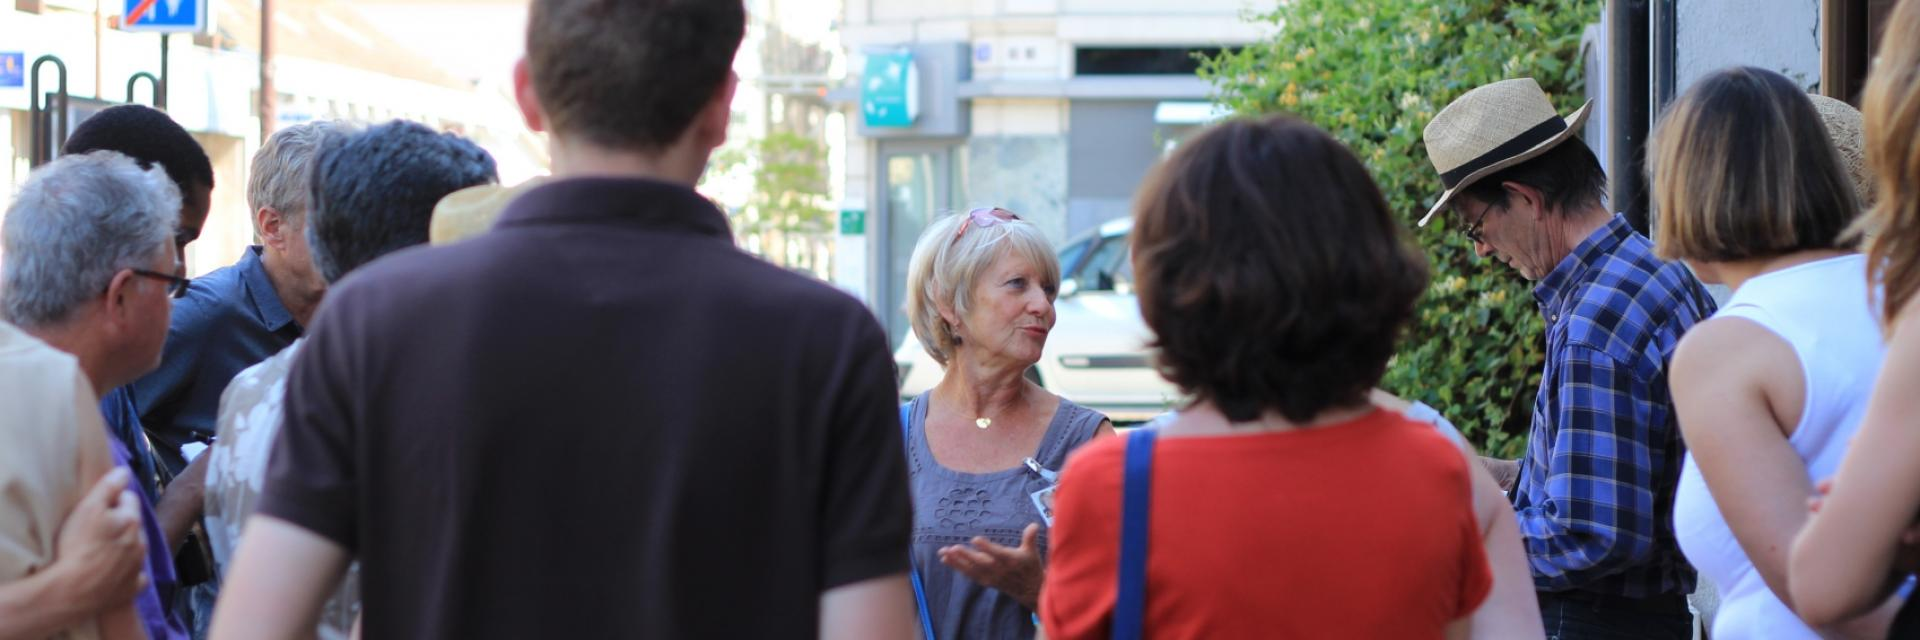 Visite Guidee Groupes Chalons En Champagne